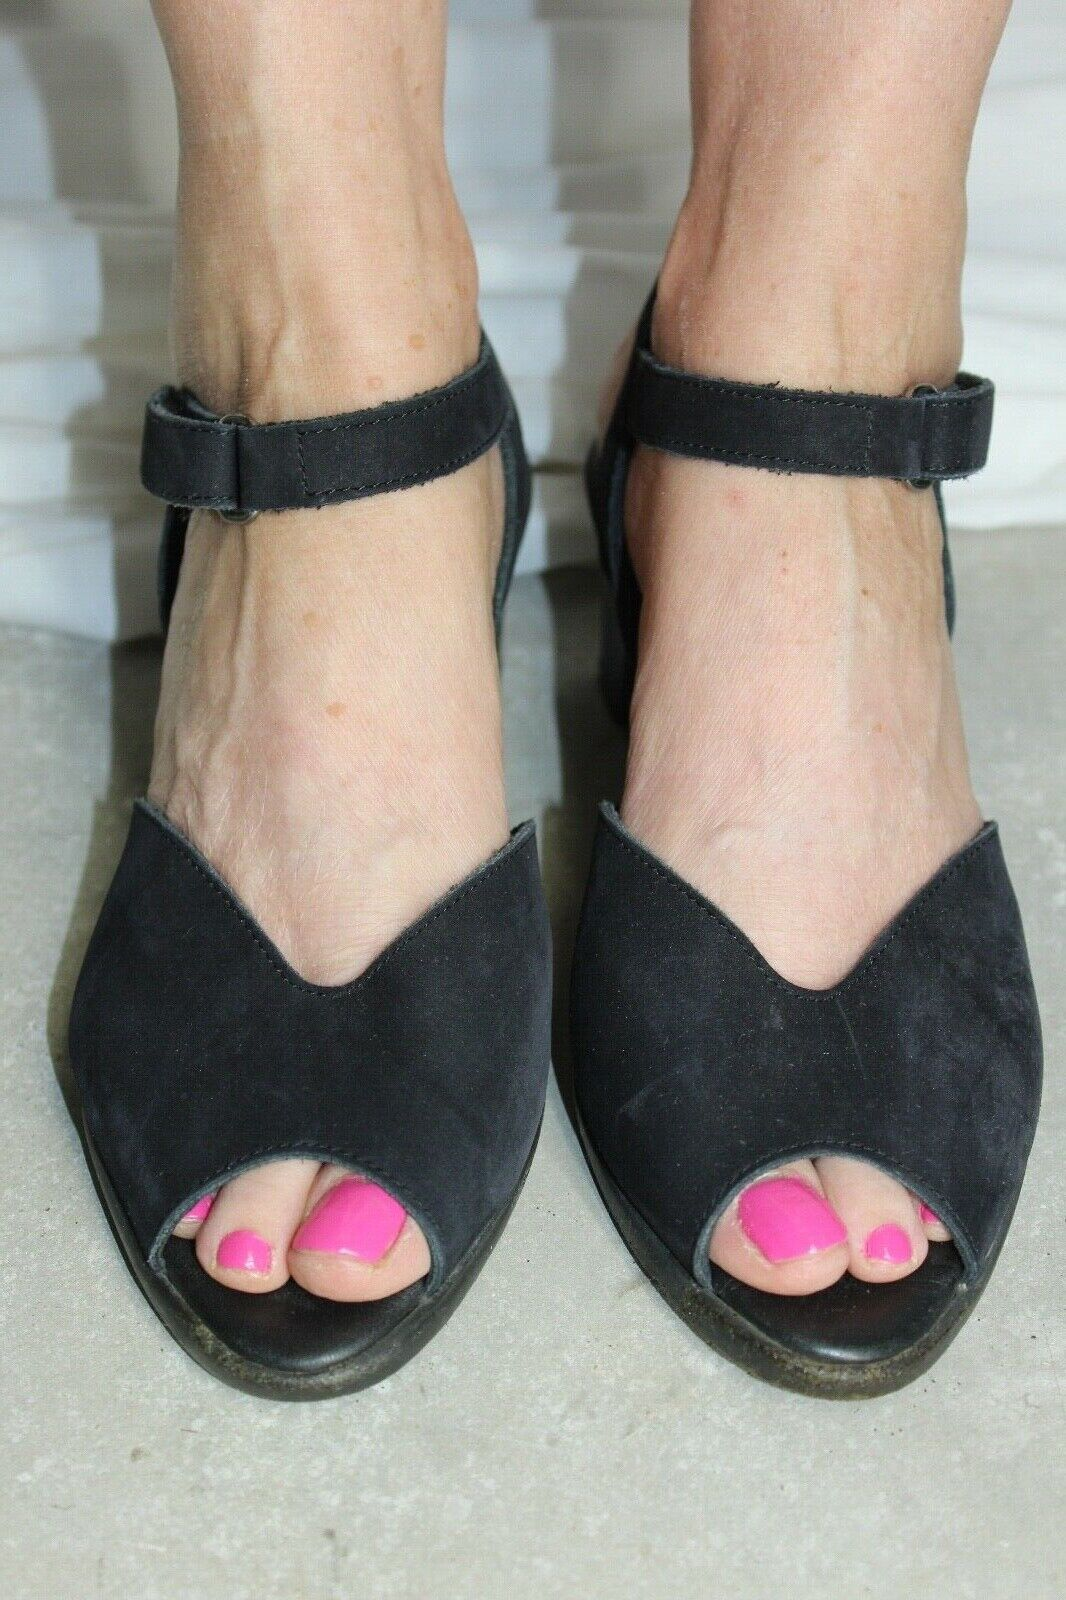 ARCHE black suede peep toe heels sandals pumps womens dancing shoes sz 40 8